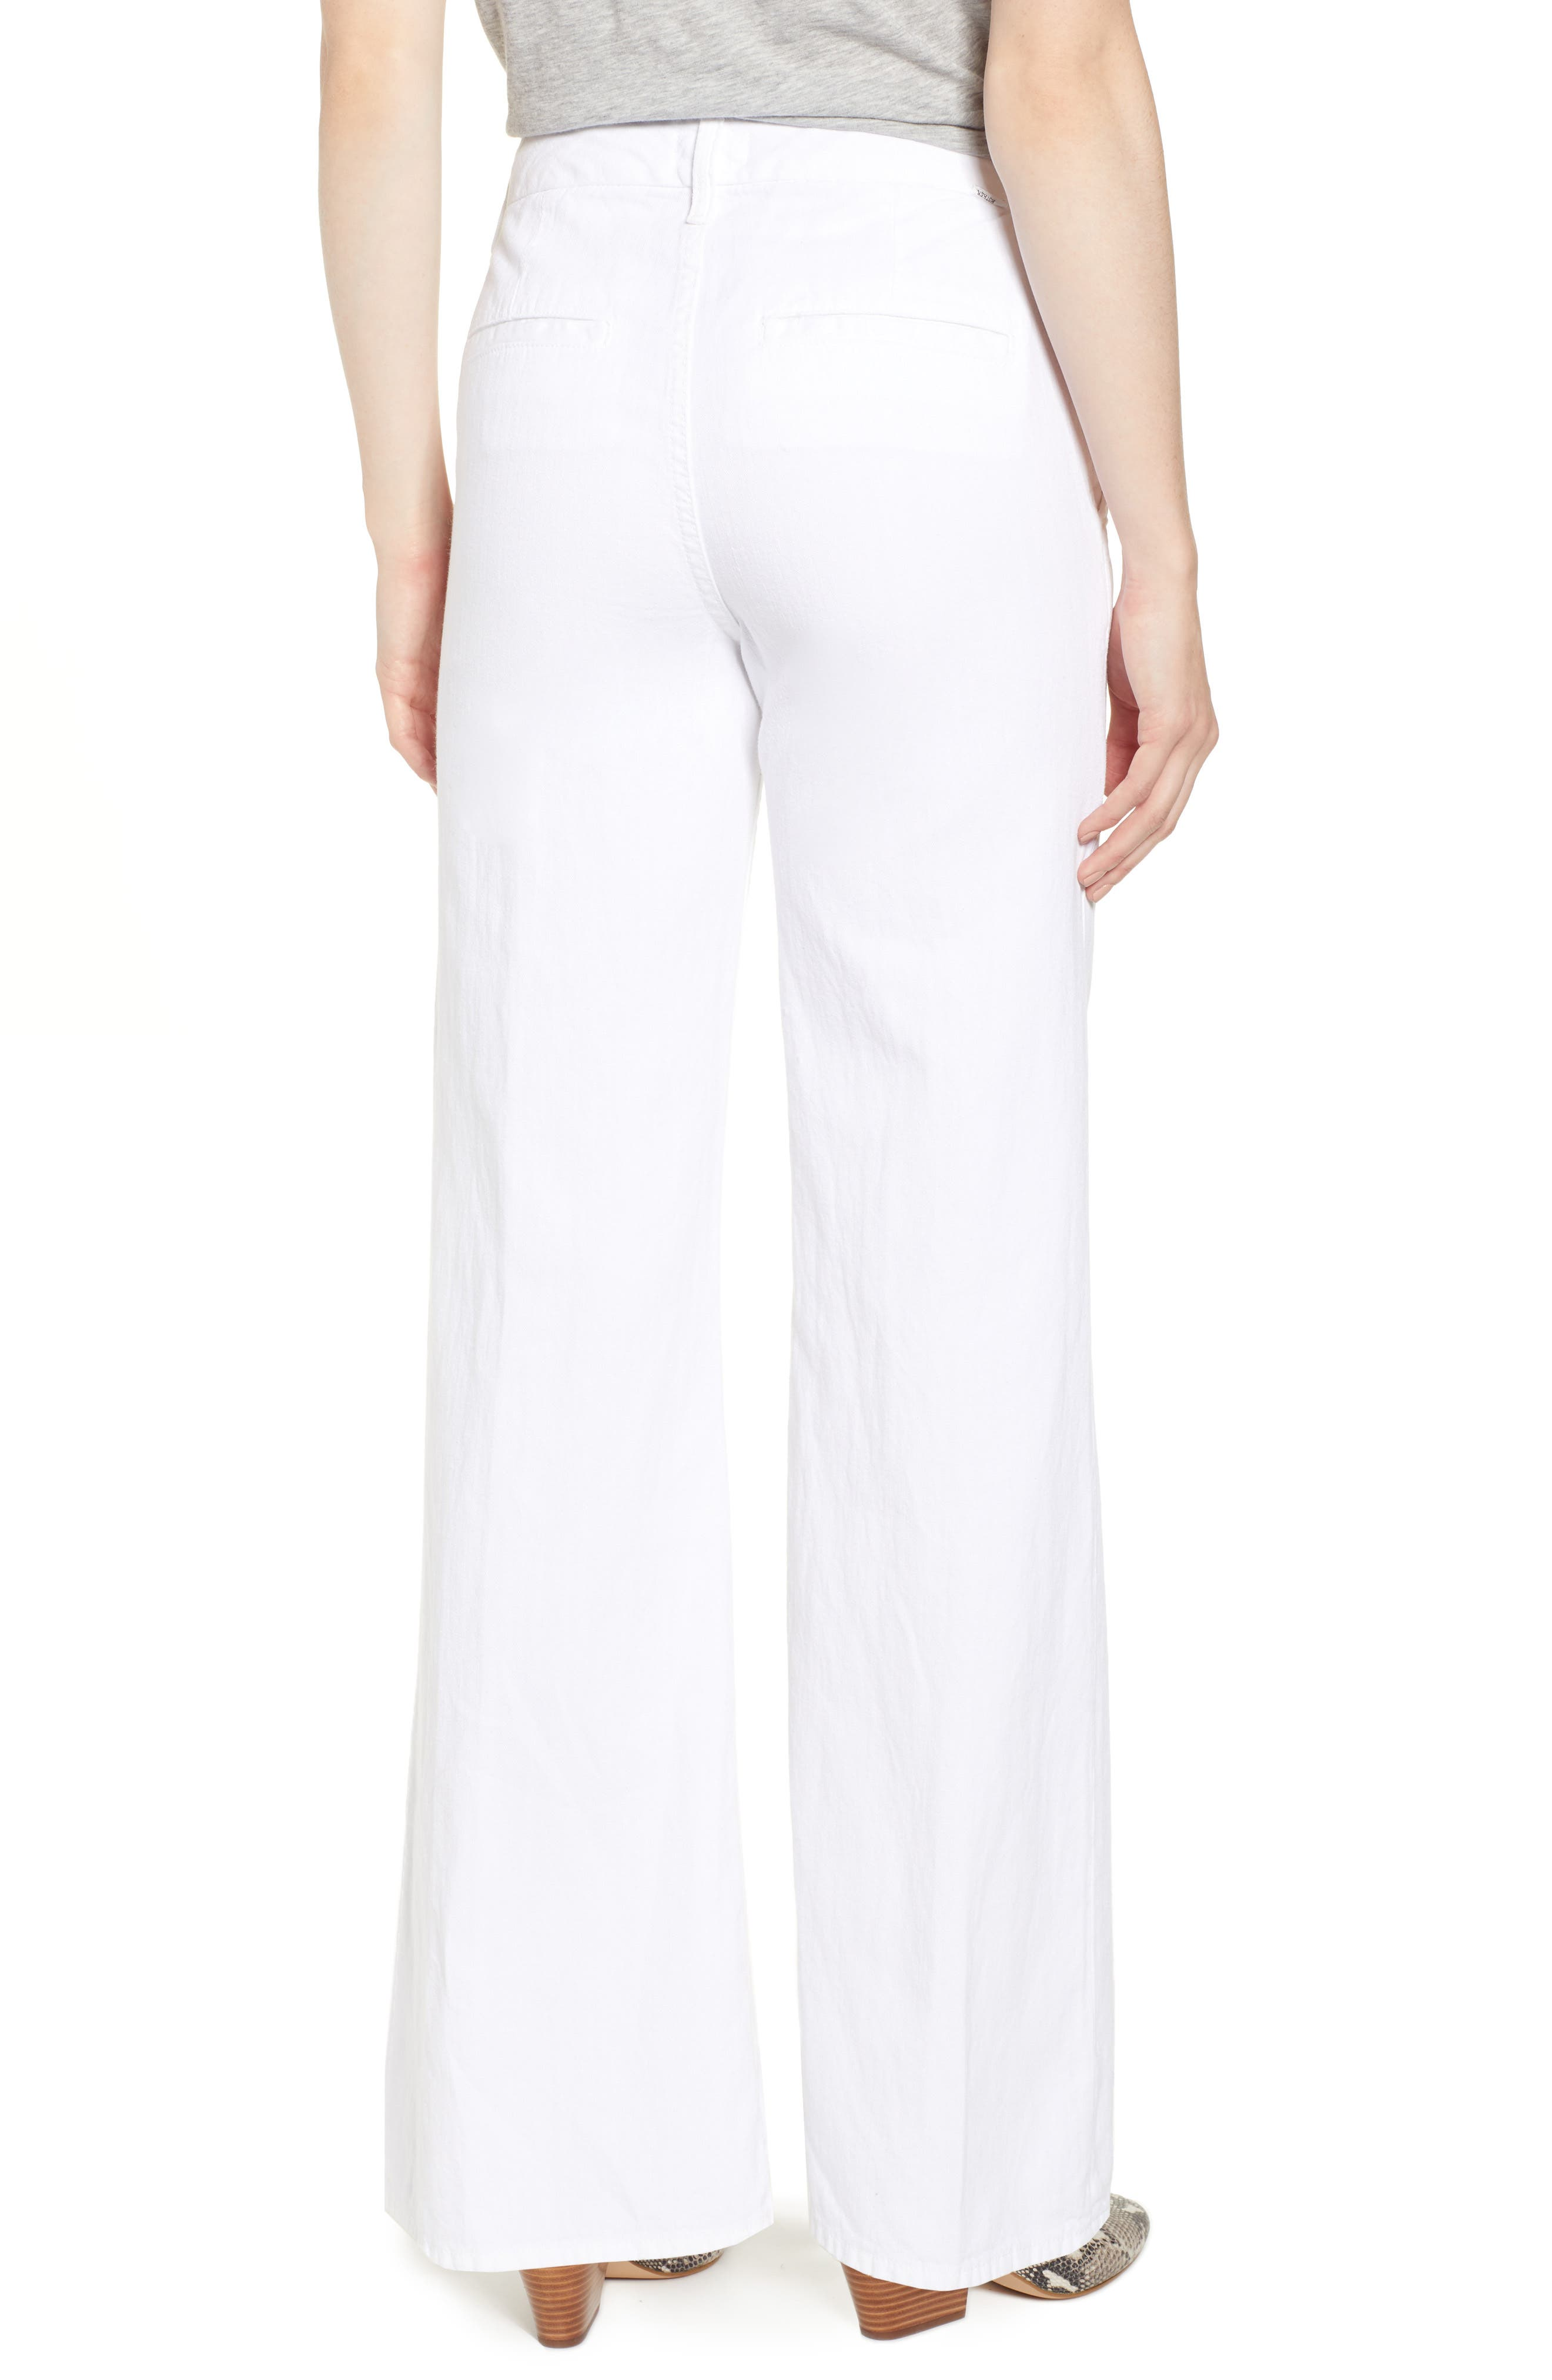 MOTHER,                             The Tie-Up Roller Wide Leg Twill Pants,                             Alternate thumbnail 2, color,                             RETURN TO THE ISLAND